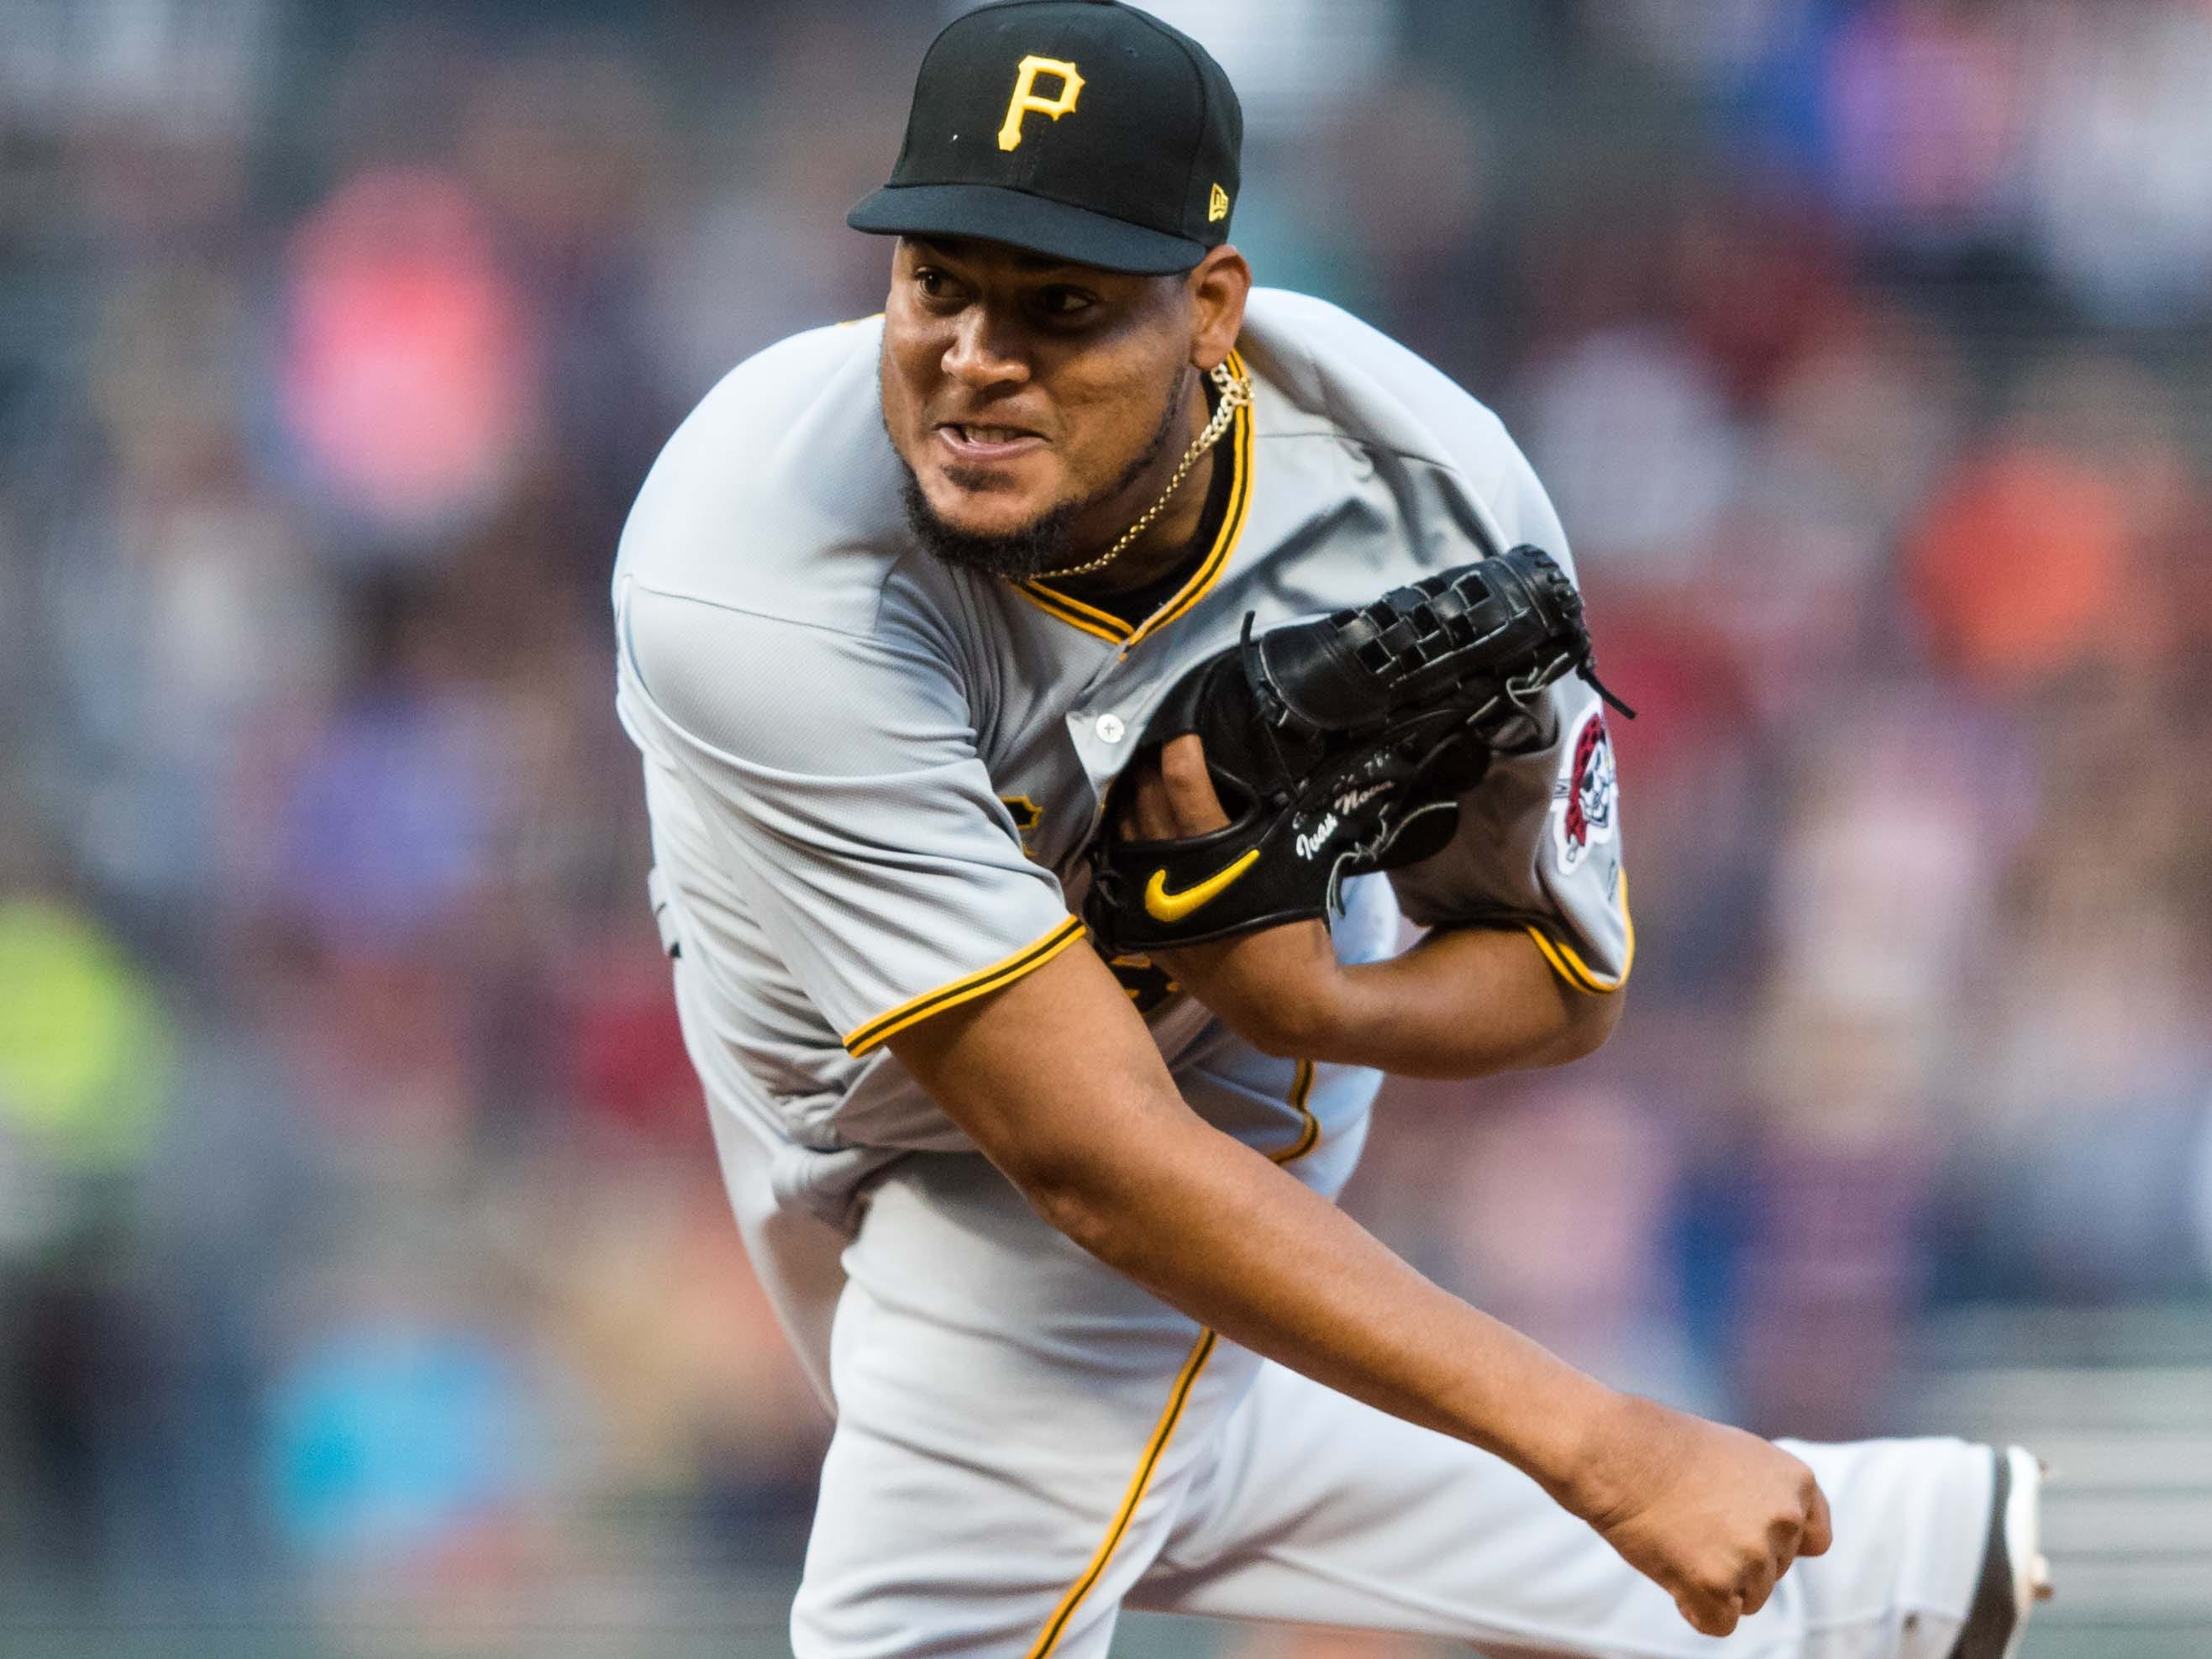 Dec. 11: The Pirates traded RHP Ivan Nova to the White Sox for minor league RHP Yordi Rosario and future considerations.